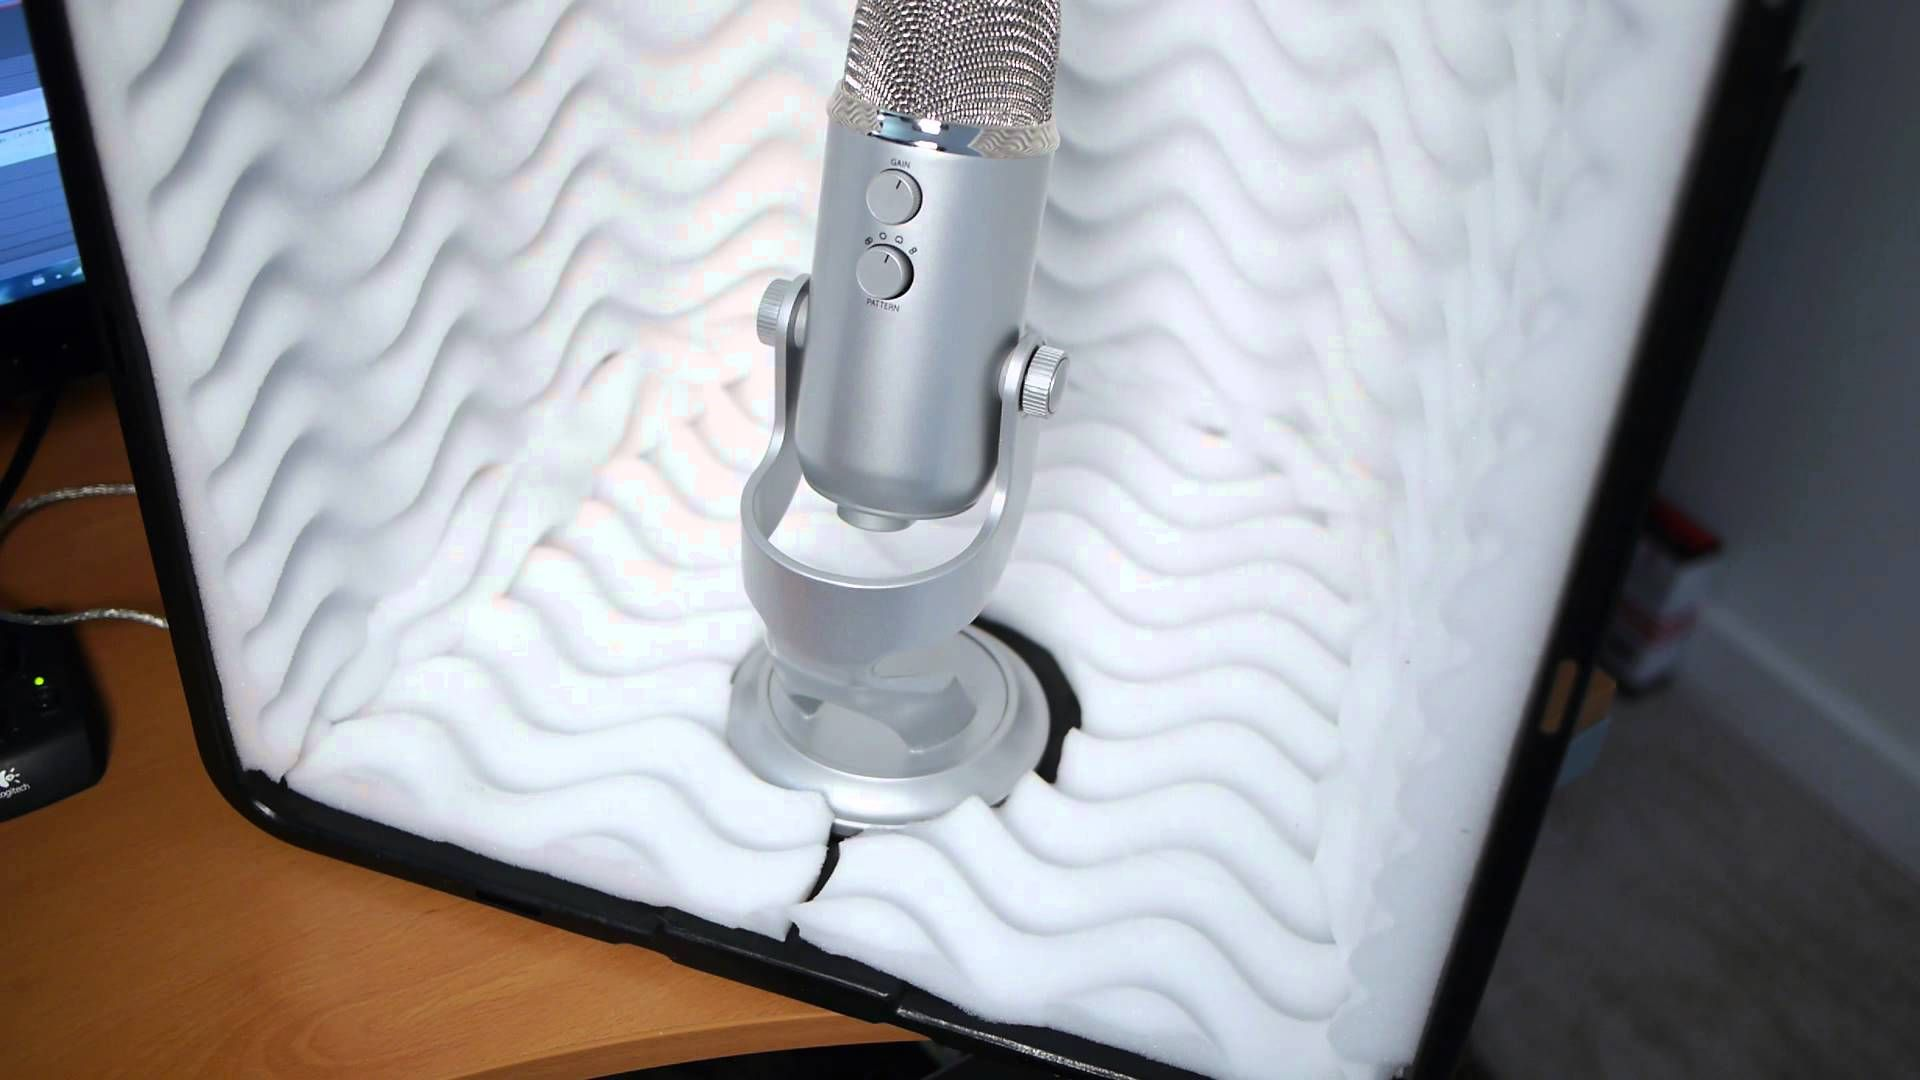 Diy 23 00 Mini Sound Booth Build In Under An Hour Recording Studio Diy Recording Booth Recording Studio Home